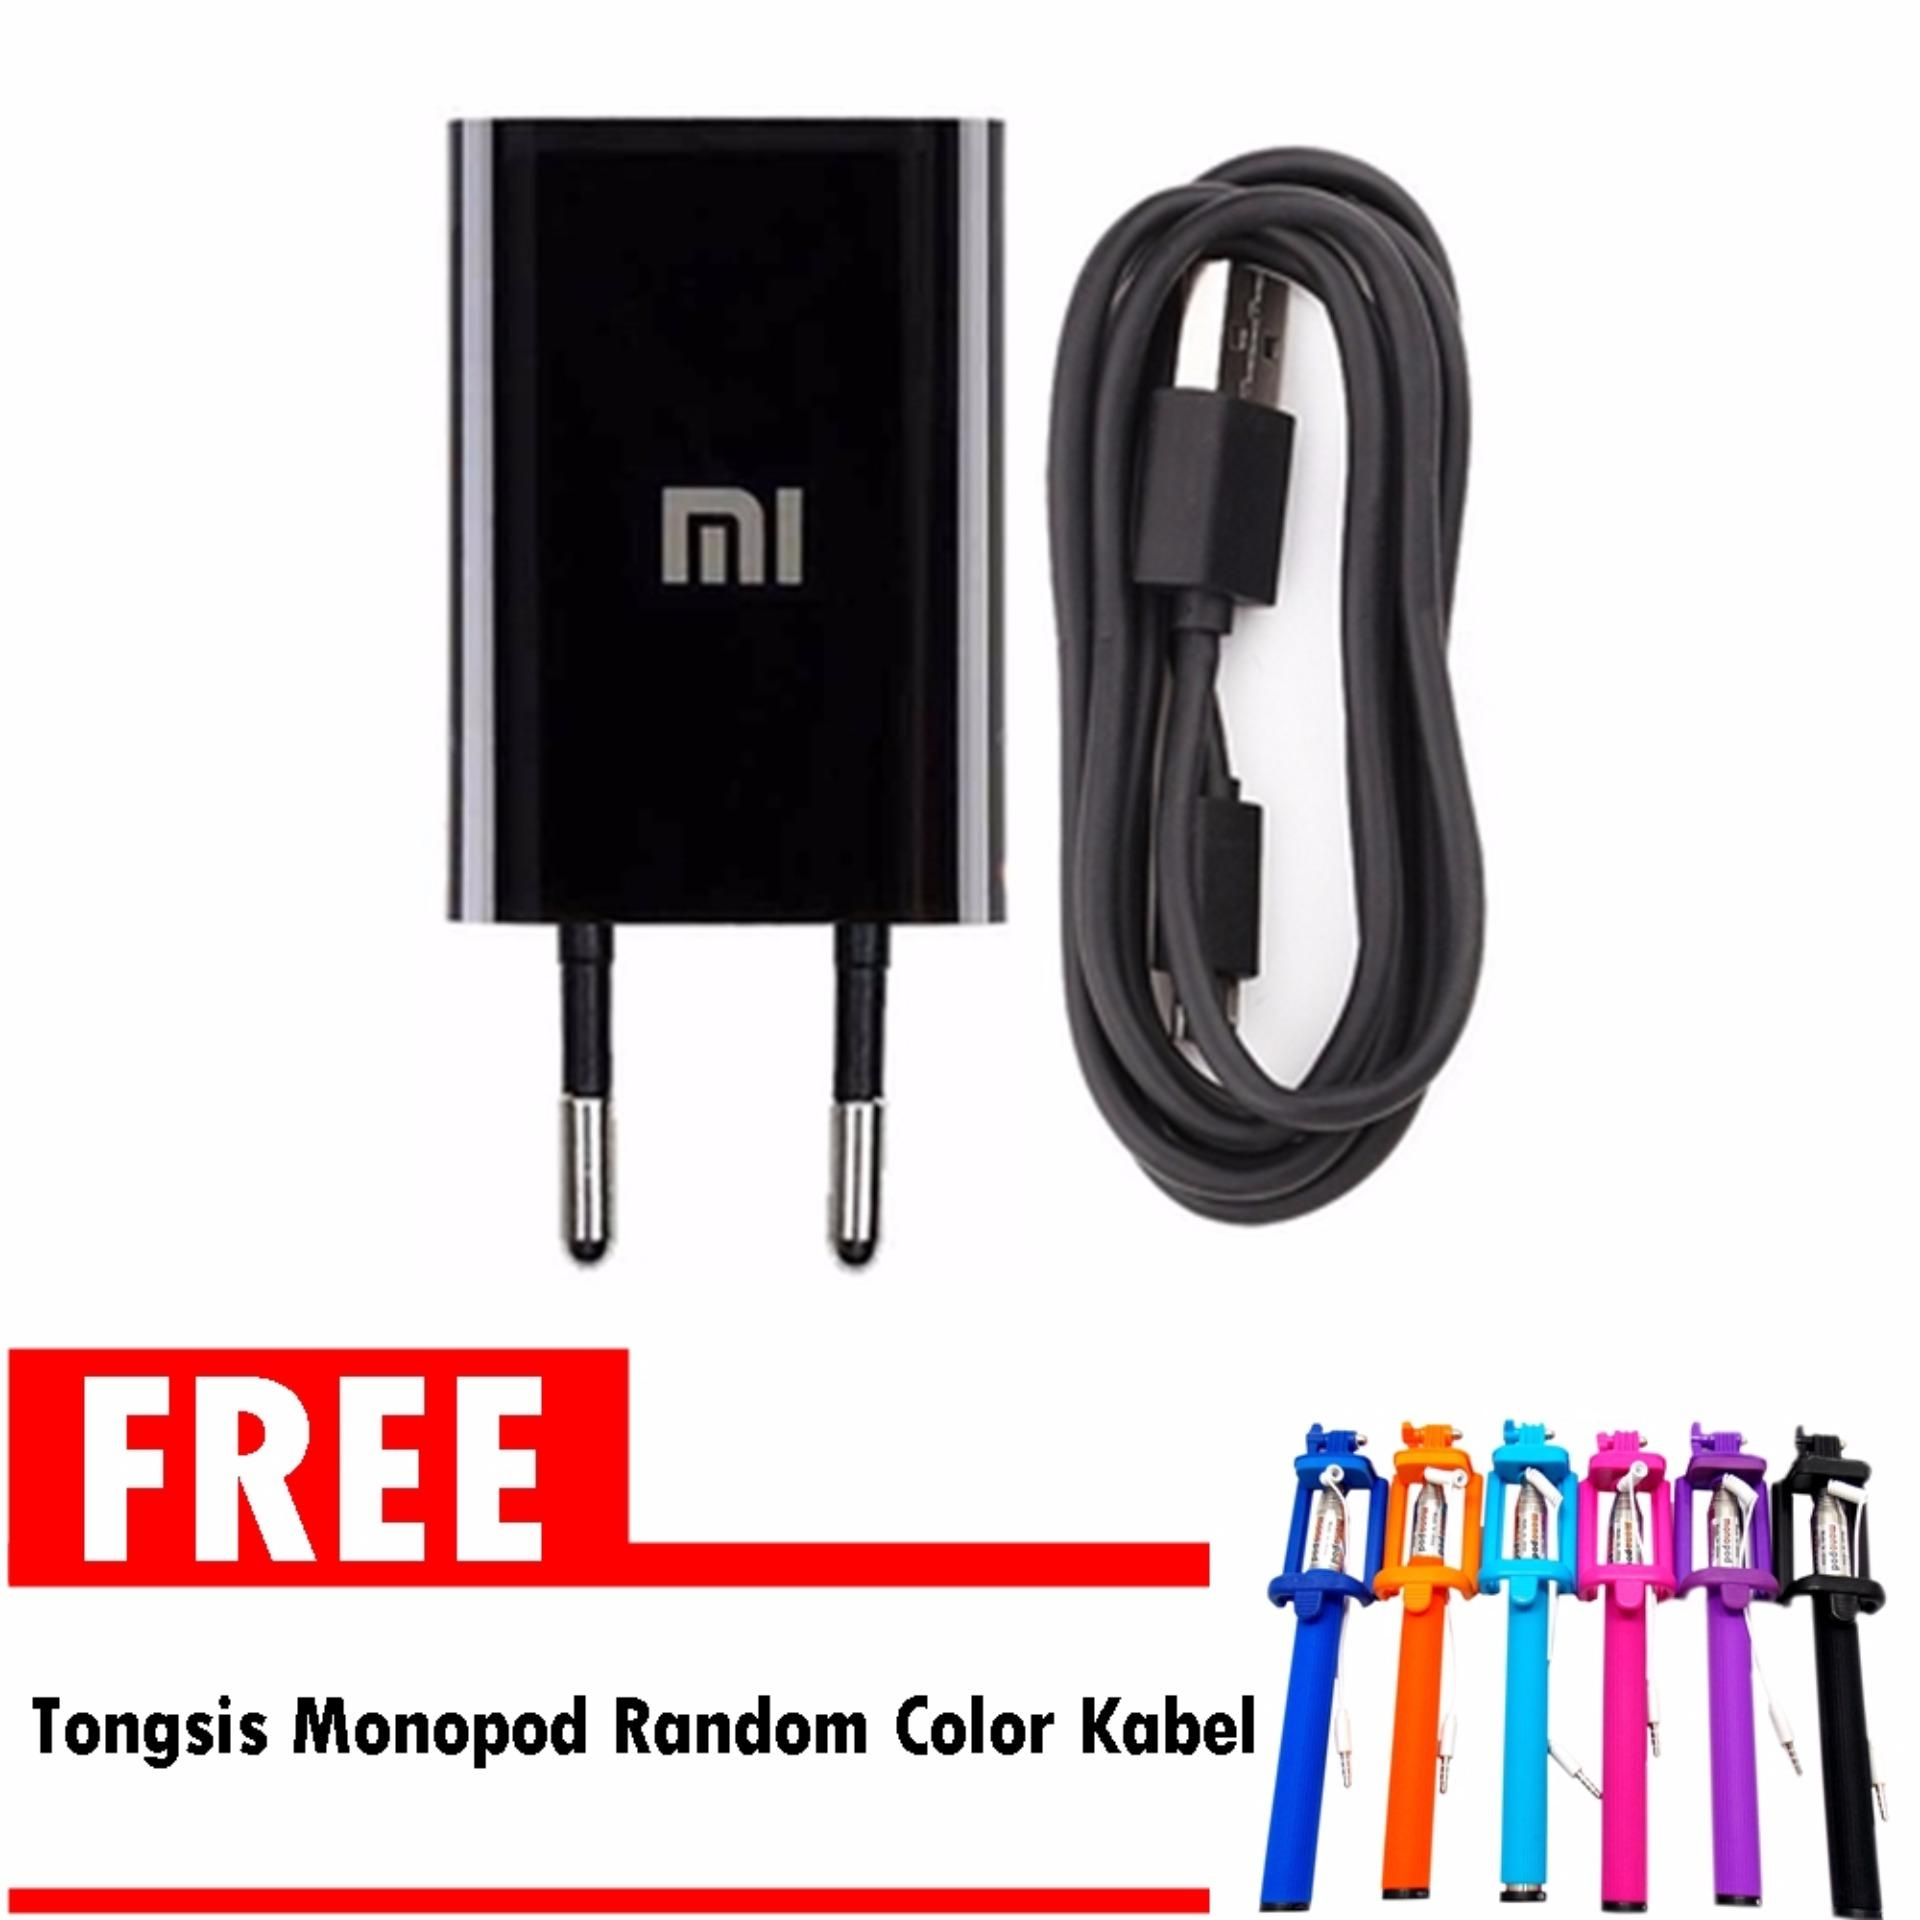 Beli Xiaomi Travel Charger Original Gratis Tongsis Lipat Kabel Selfie Stick Cable Cicilan